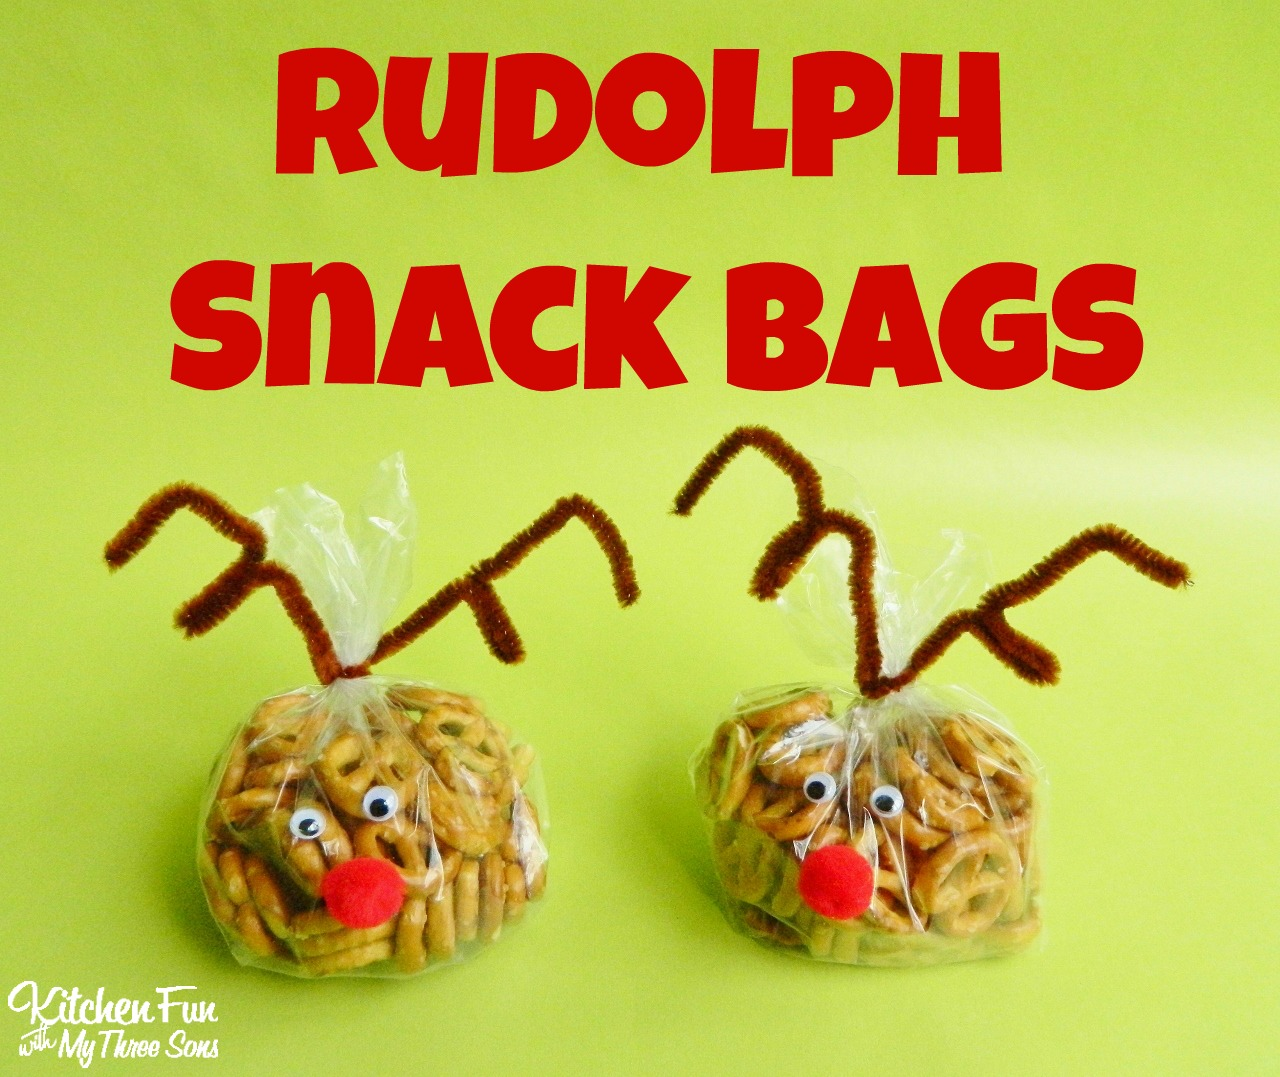 Rudolph the Red Nosed Reindeer Snack Bags - Kitchen Fun With My 3 Sons